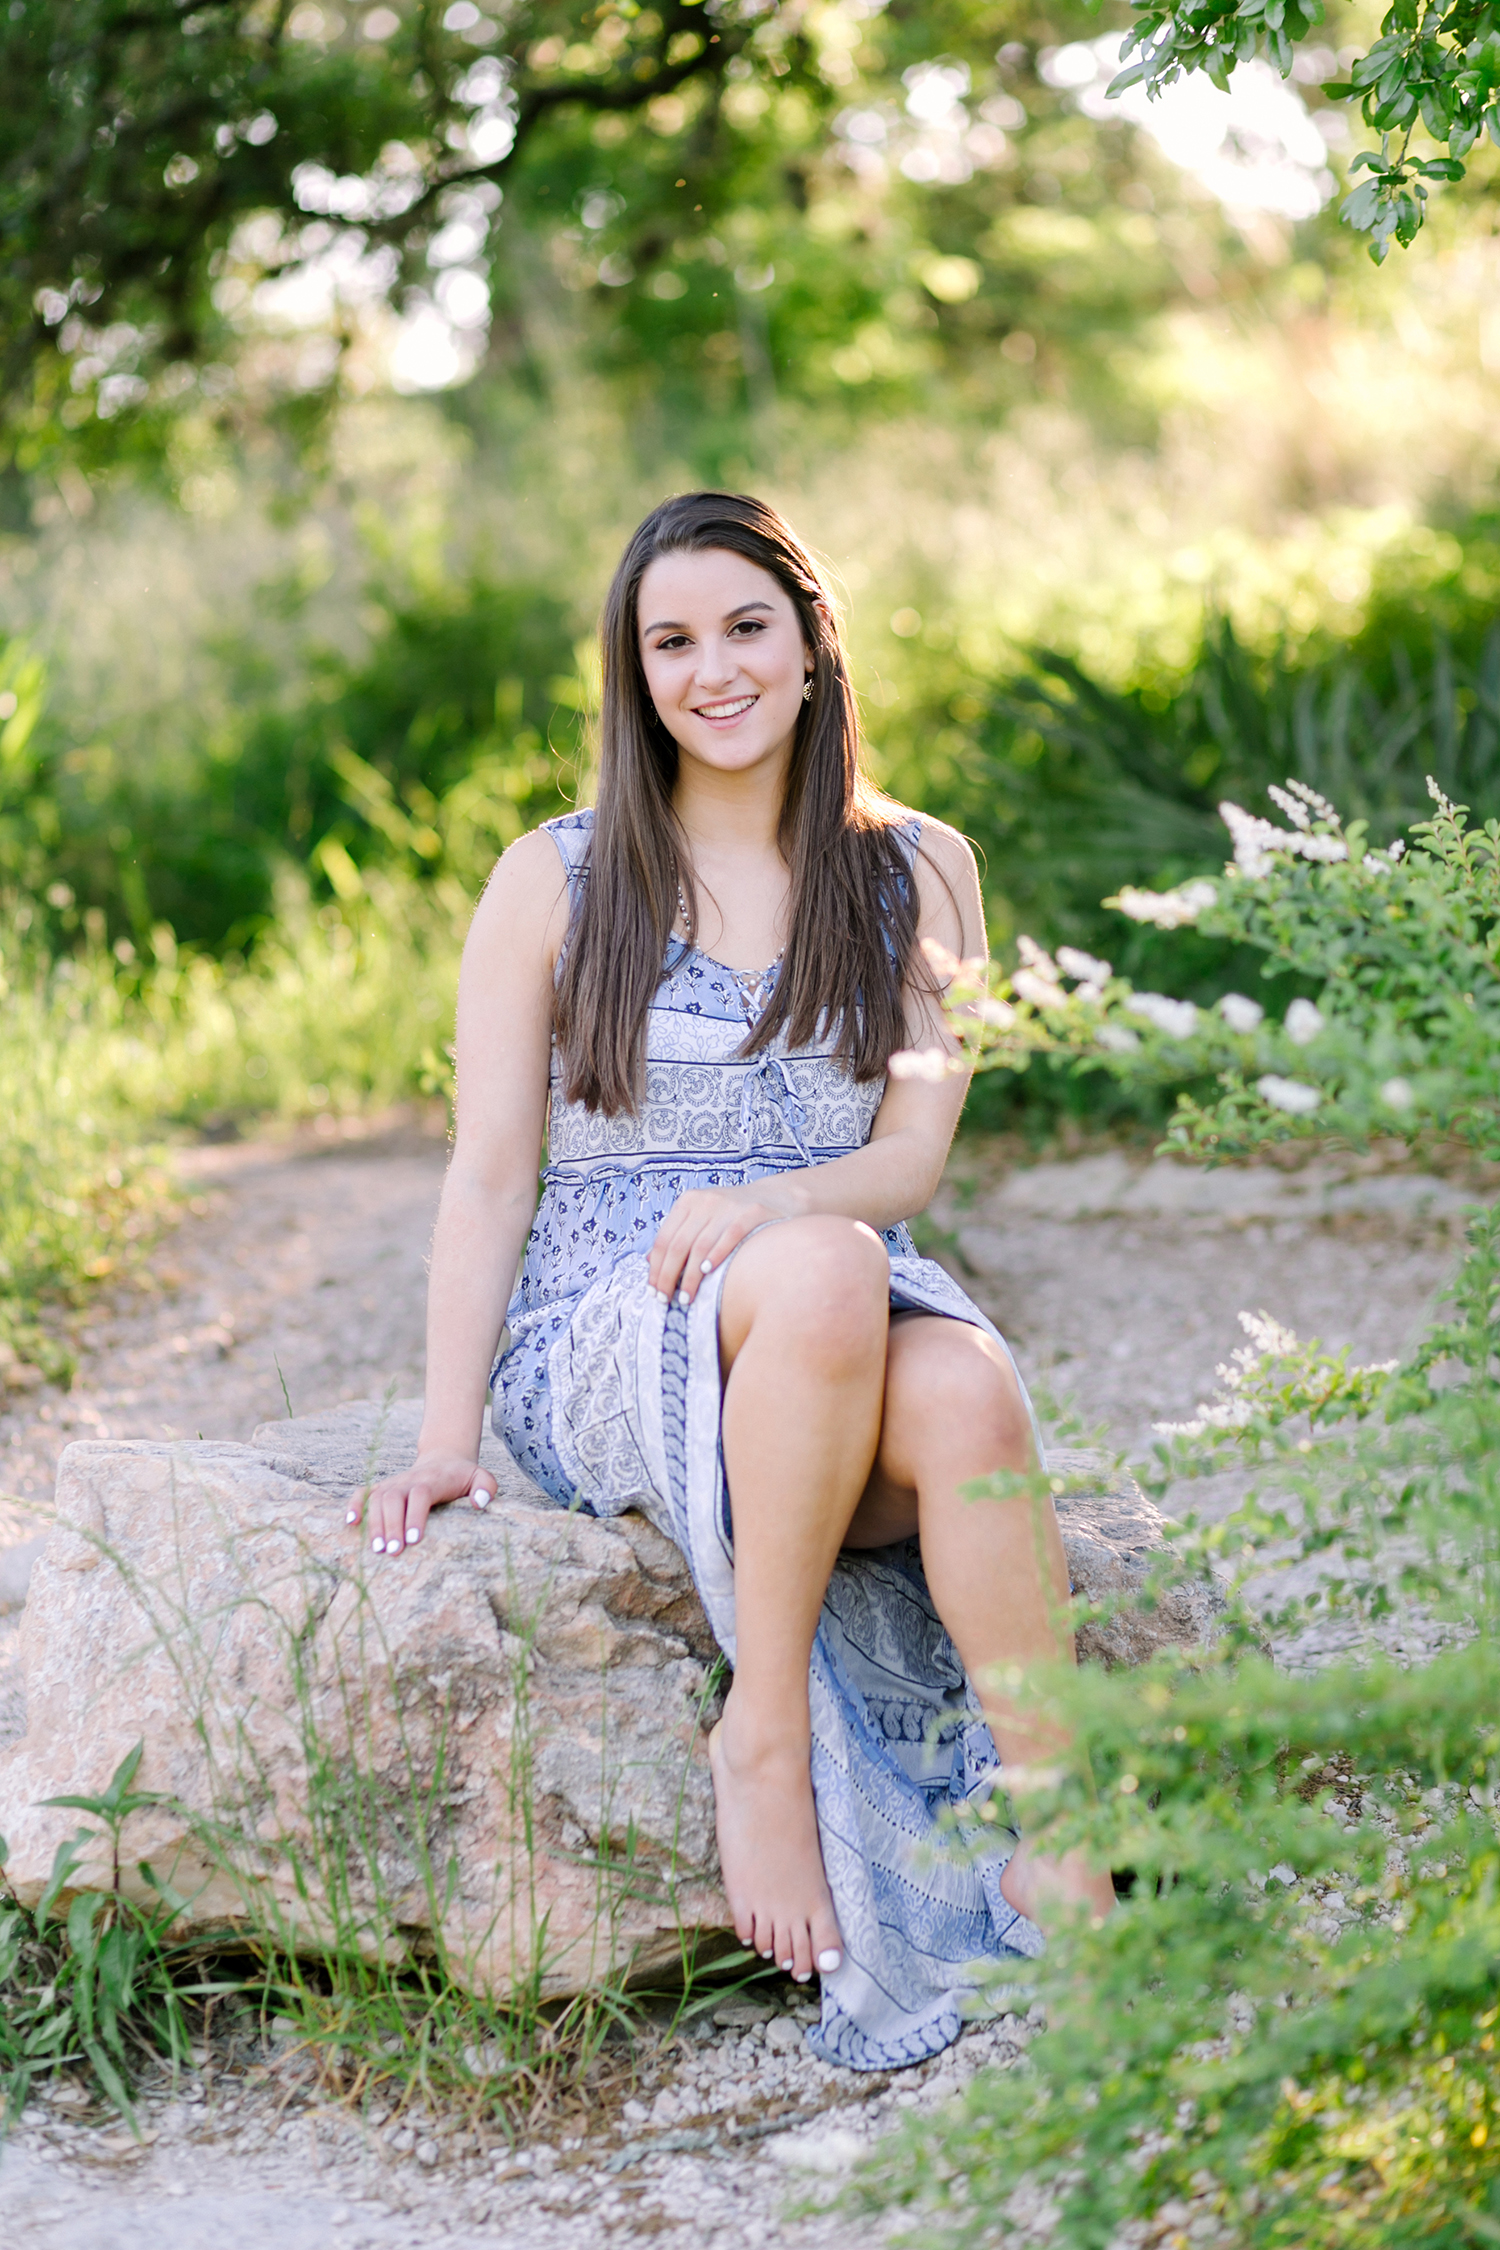 austin-tx-senior-portrait-photographer-04.jpg